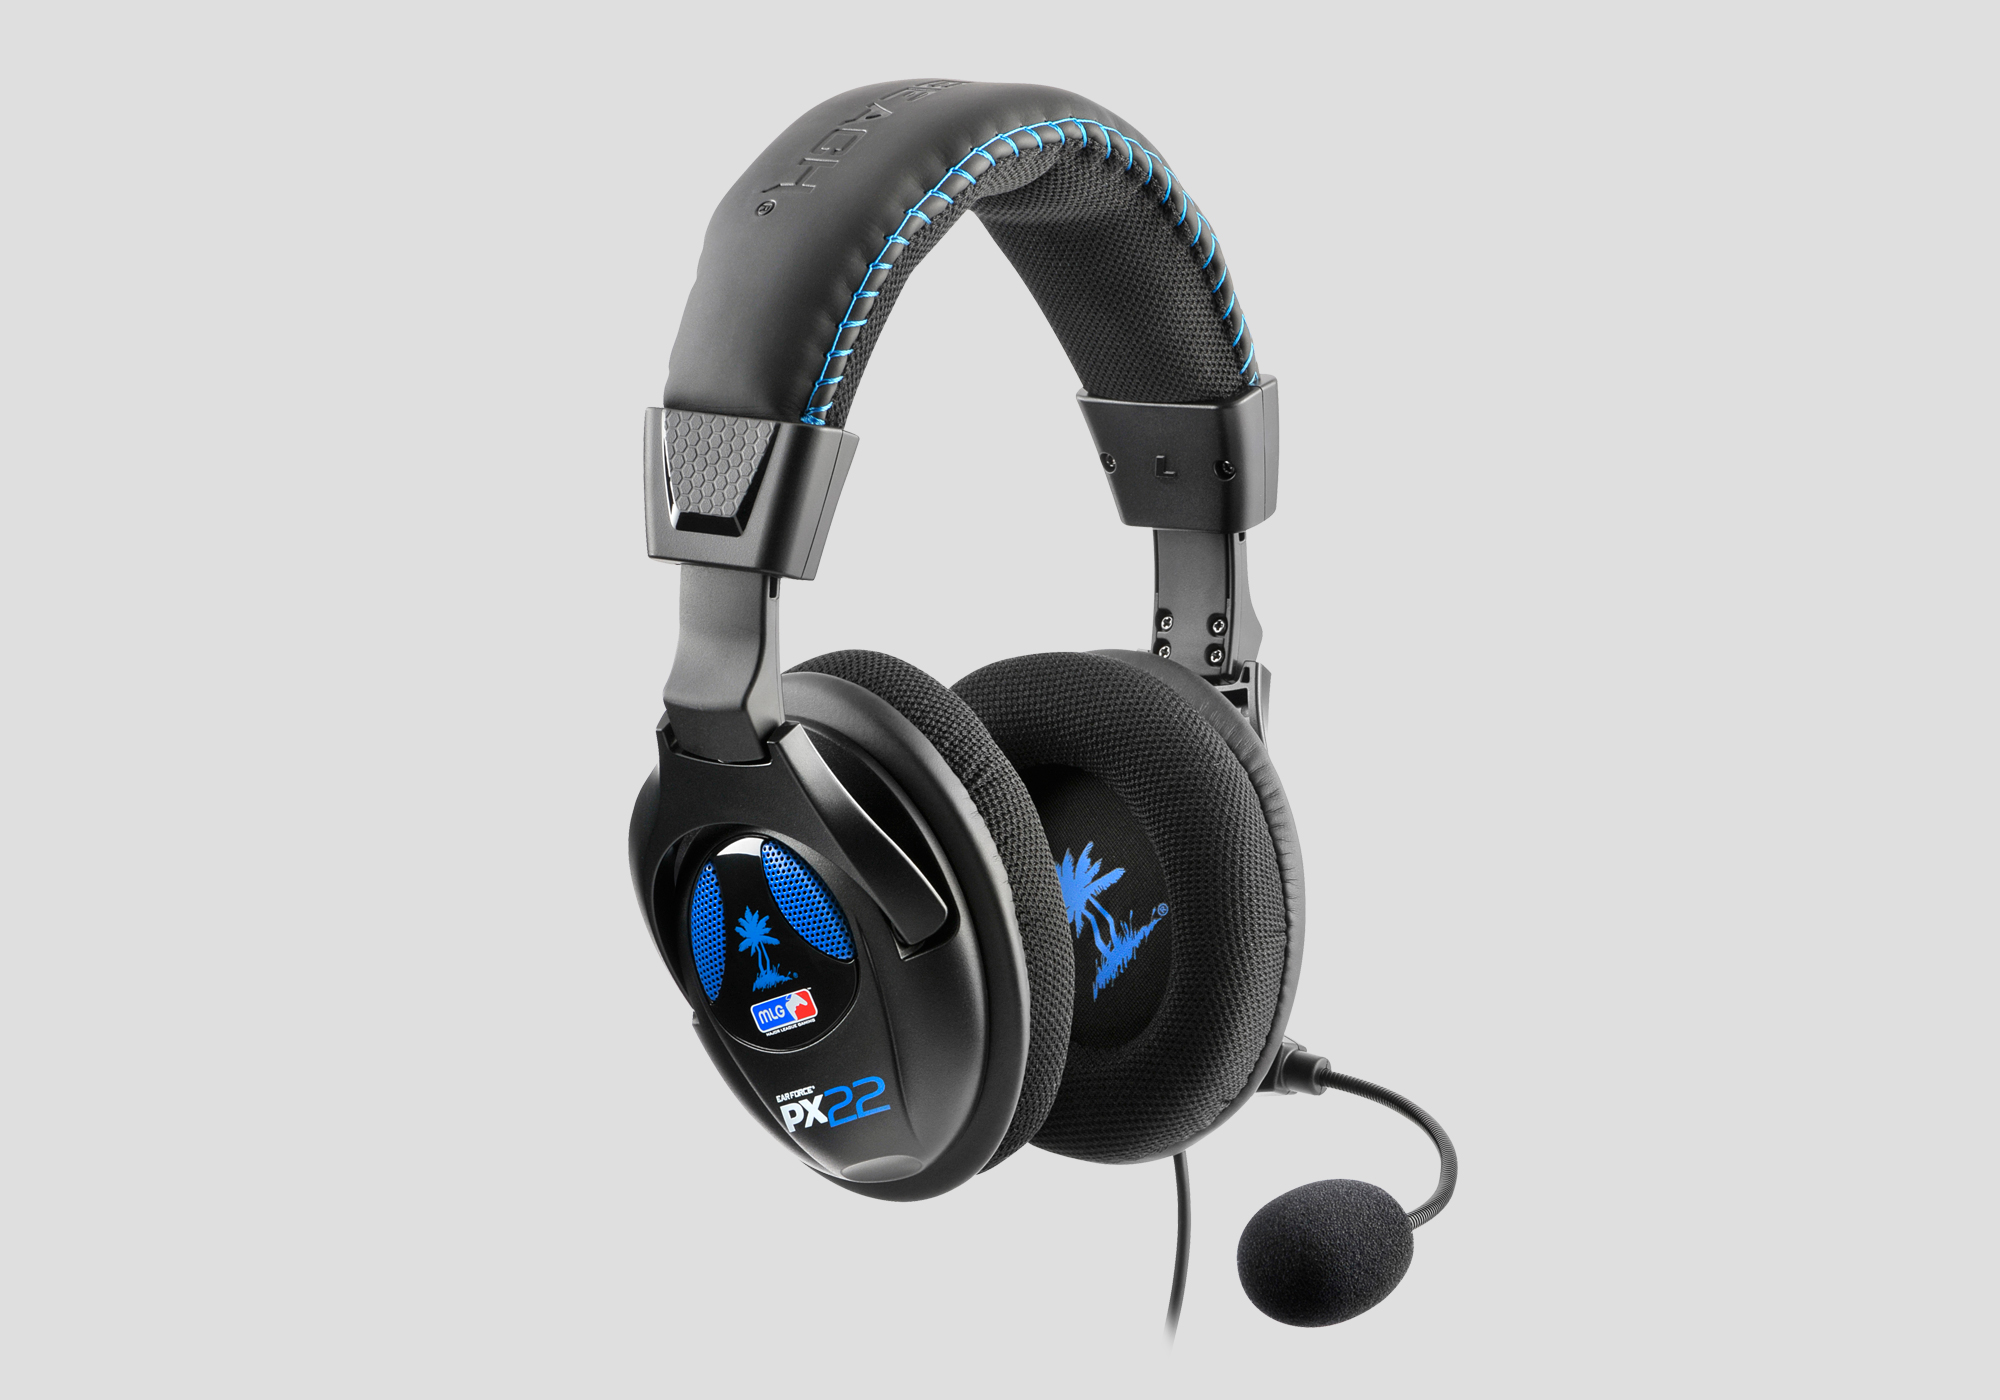 test du casque ear force px22 de turtle beach page 1 gamalive. Black Bedroom Furniture Sets. Home Design Ideas